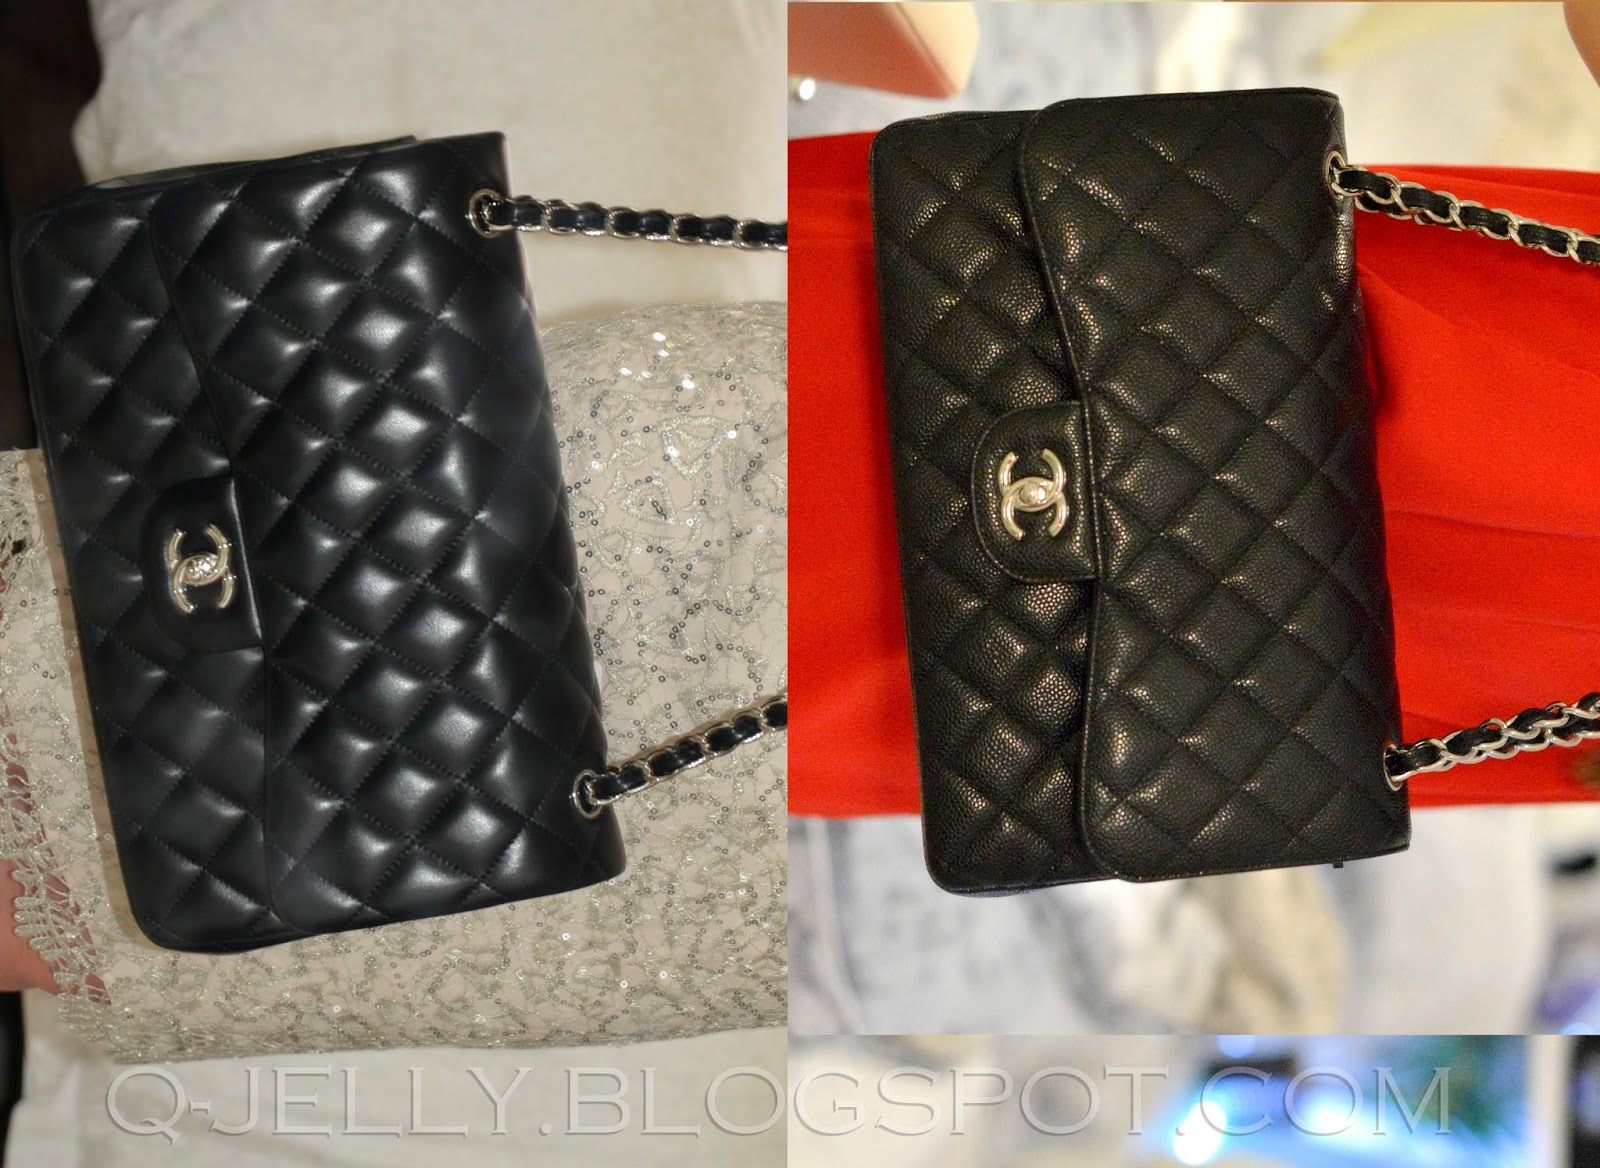 32cf3c220cfdbd Chanel Flap Bag Comparison   Stanford Center for Opportunity Policy ...